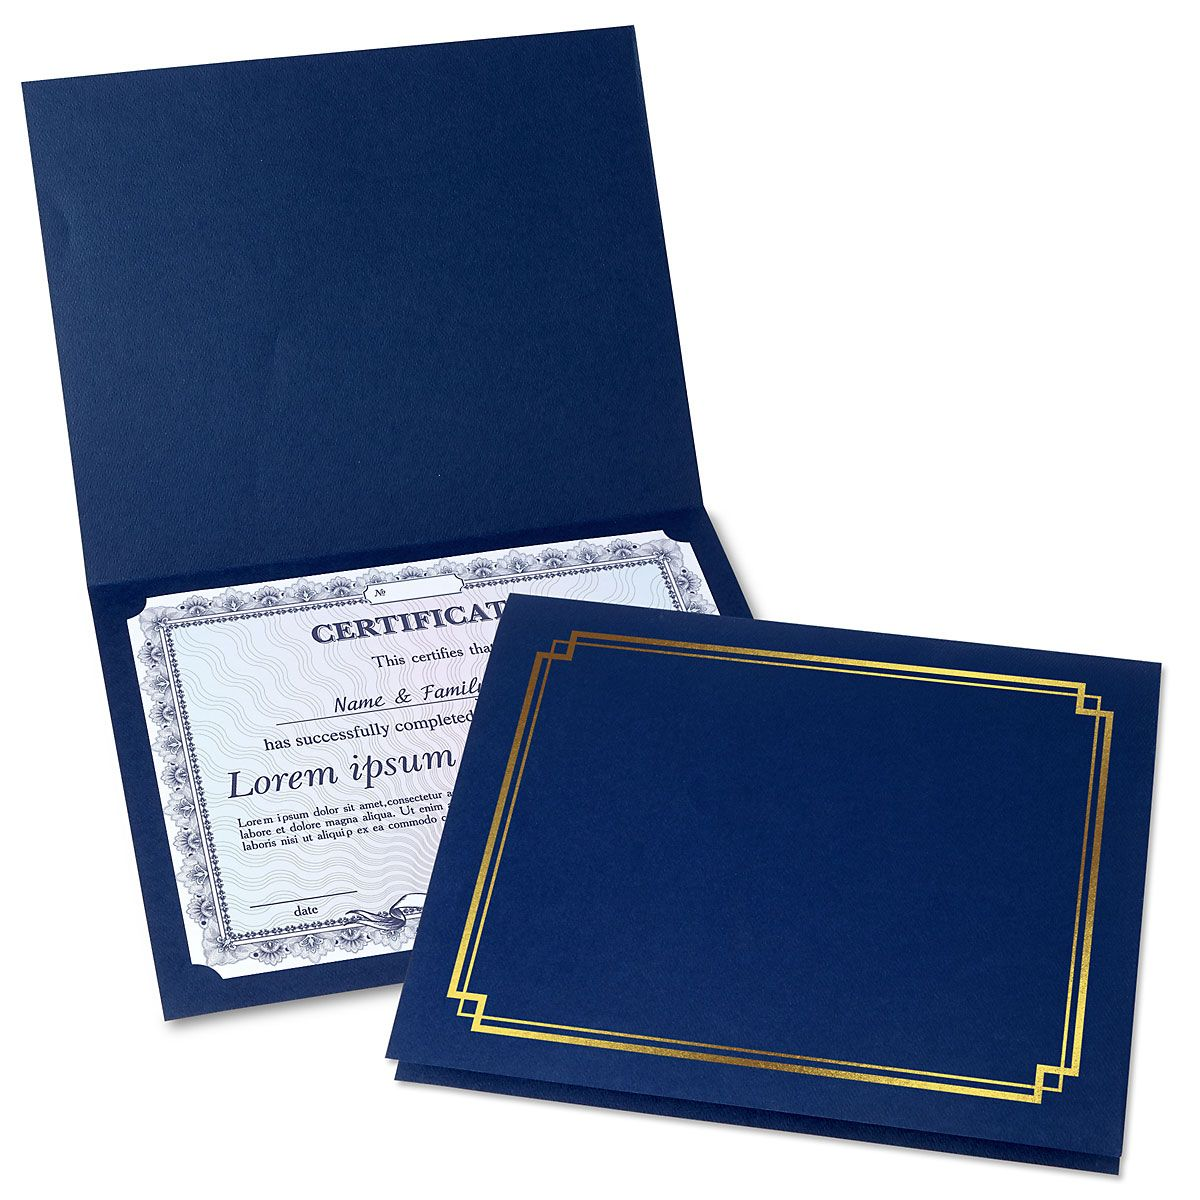 Classic Blue Certificate Jacket with Gold Border